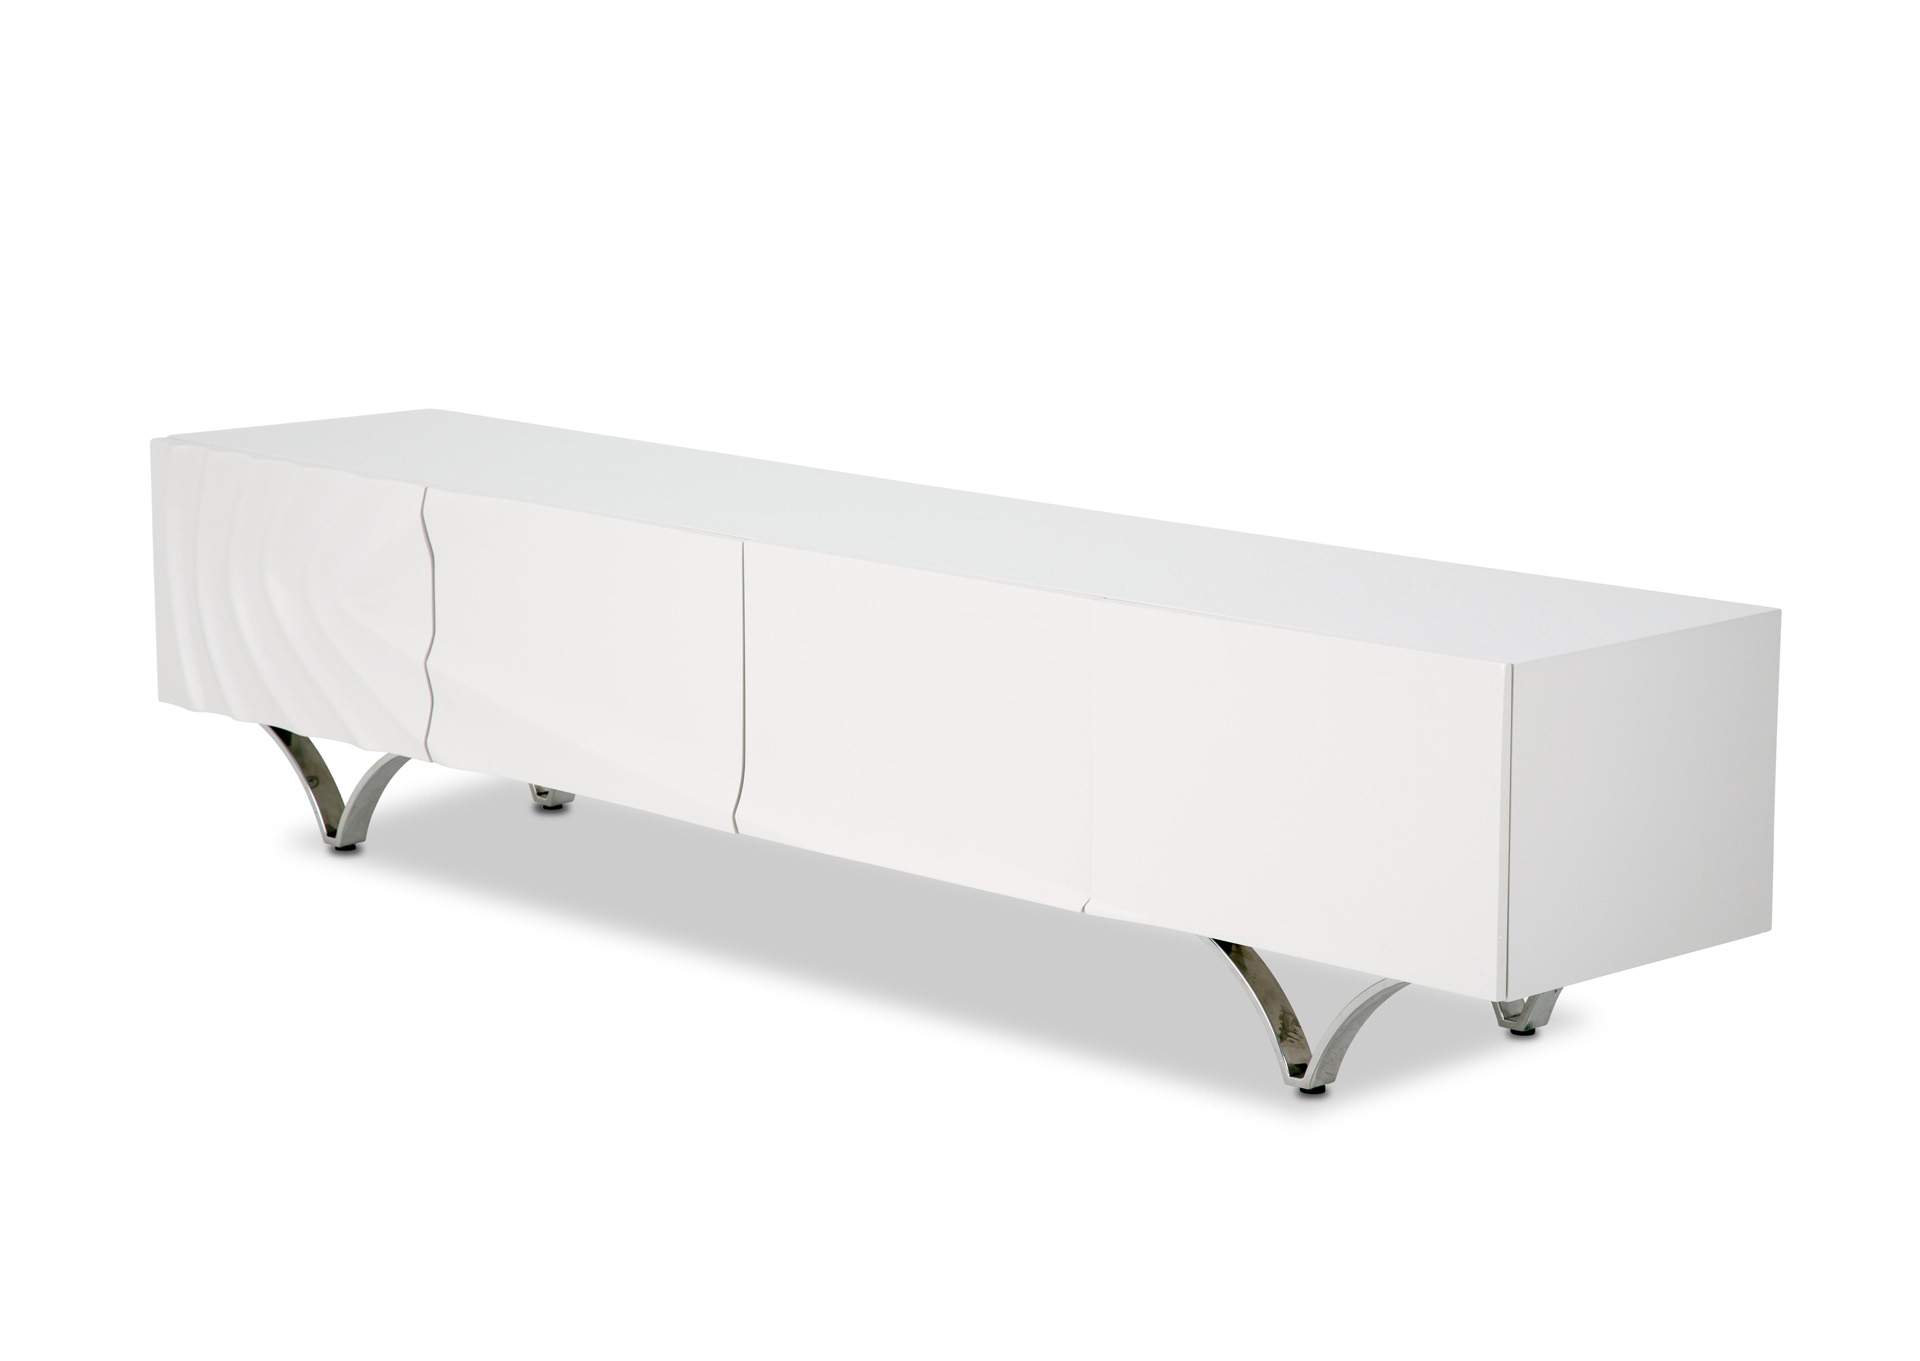 Trance Cosmo Off-White TV Console,AICO